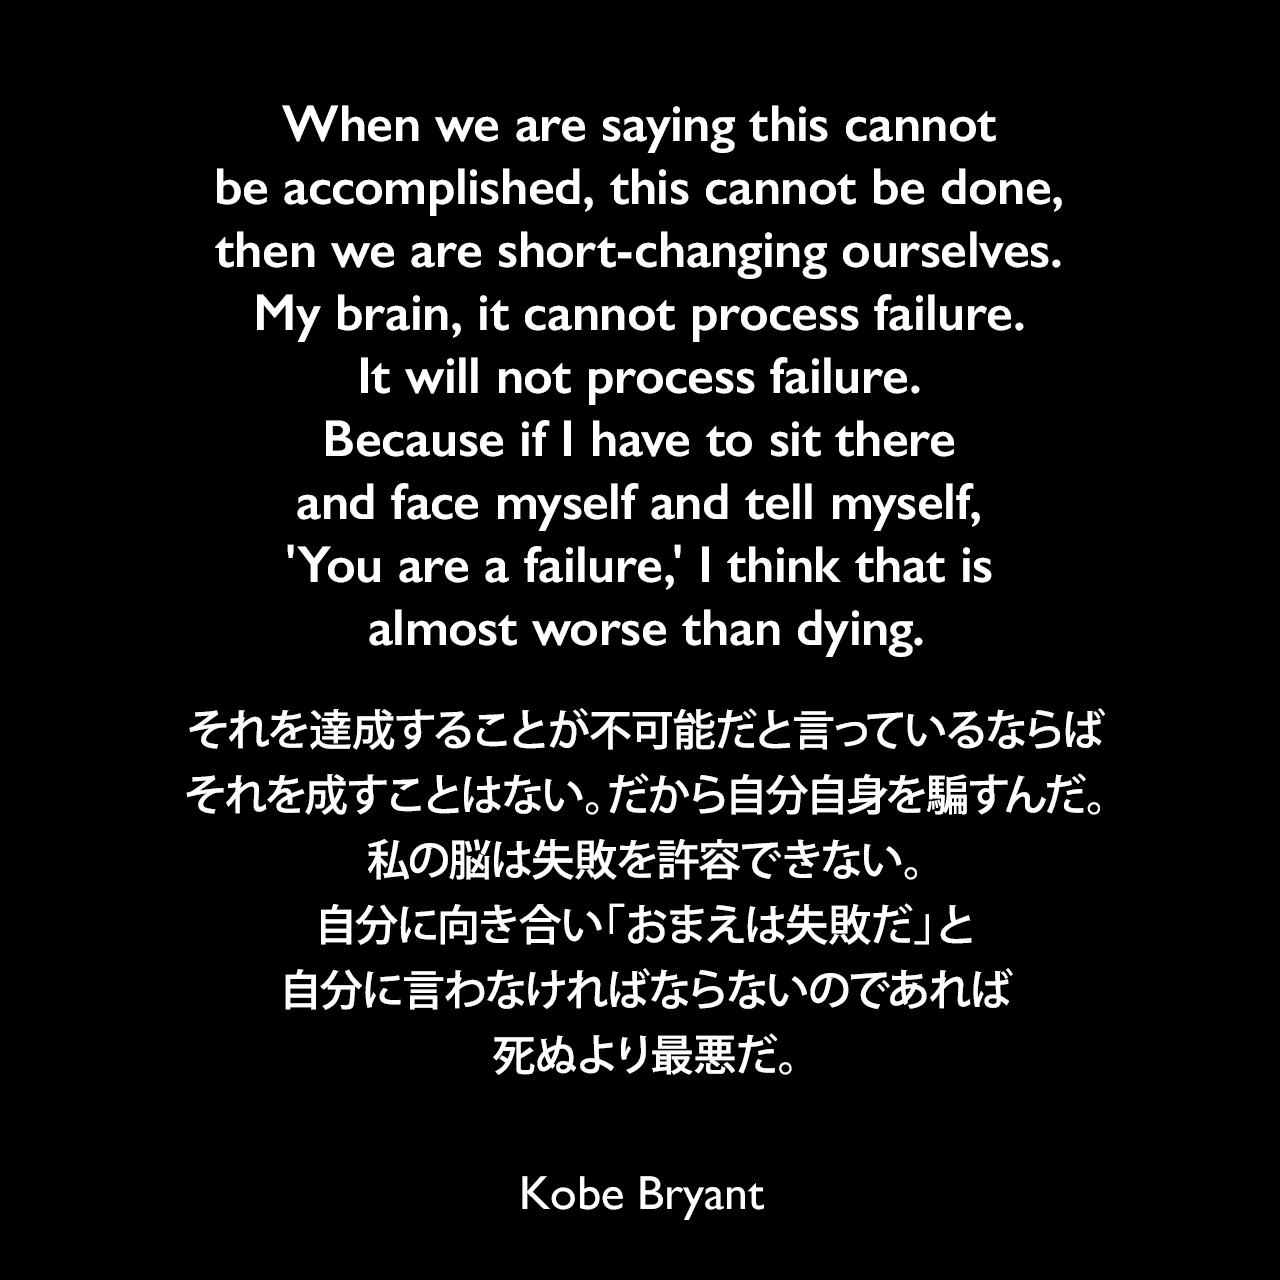 When we are saying this cannot be accomplished, this cannot be done, then we are short-changing ourselves. My brain, it cannot process failure. It will not process failure. Because if I have to sit there and face myself and tell myself, 'You are a failure,' I think that is almost worse than dying.それを達成することが不可能だと言っているならば、それを成すことはない。だから自分自身を騙すんだ。私の脳は失敗を許容できない。自分に向き合い「おまえは失敗だ」と自分に言わなければならないのであれば、死ぬより最悪だ。Kobe Bryant